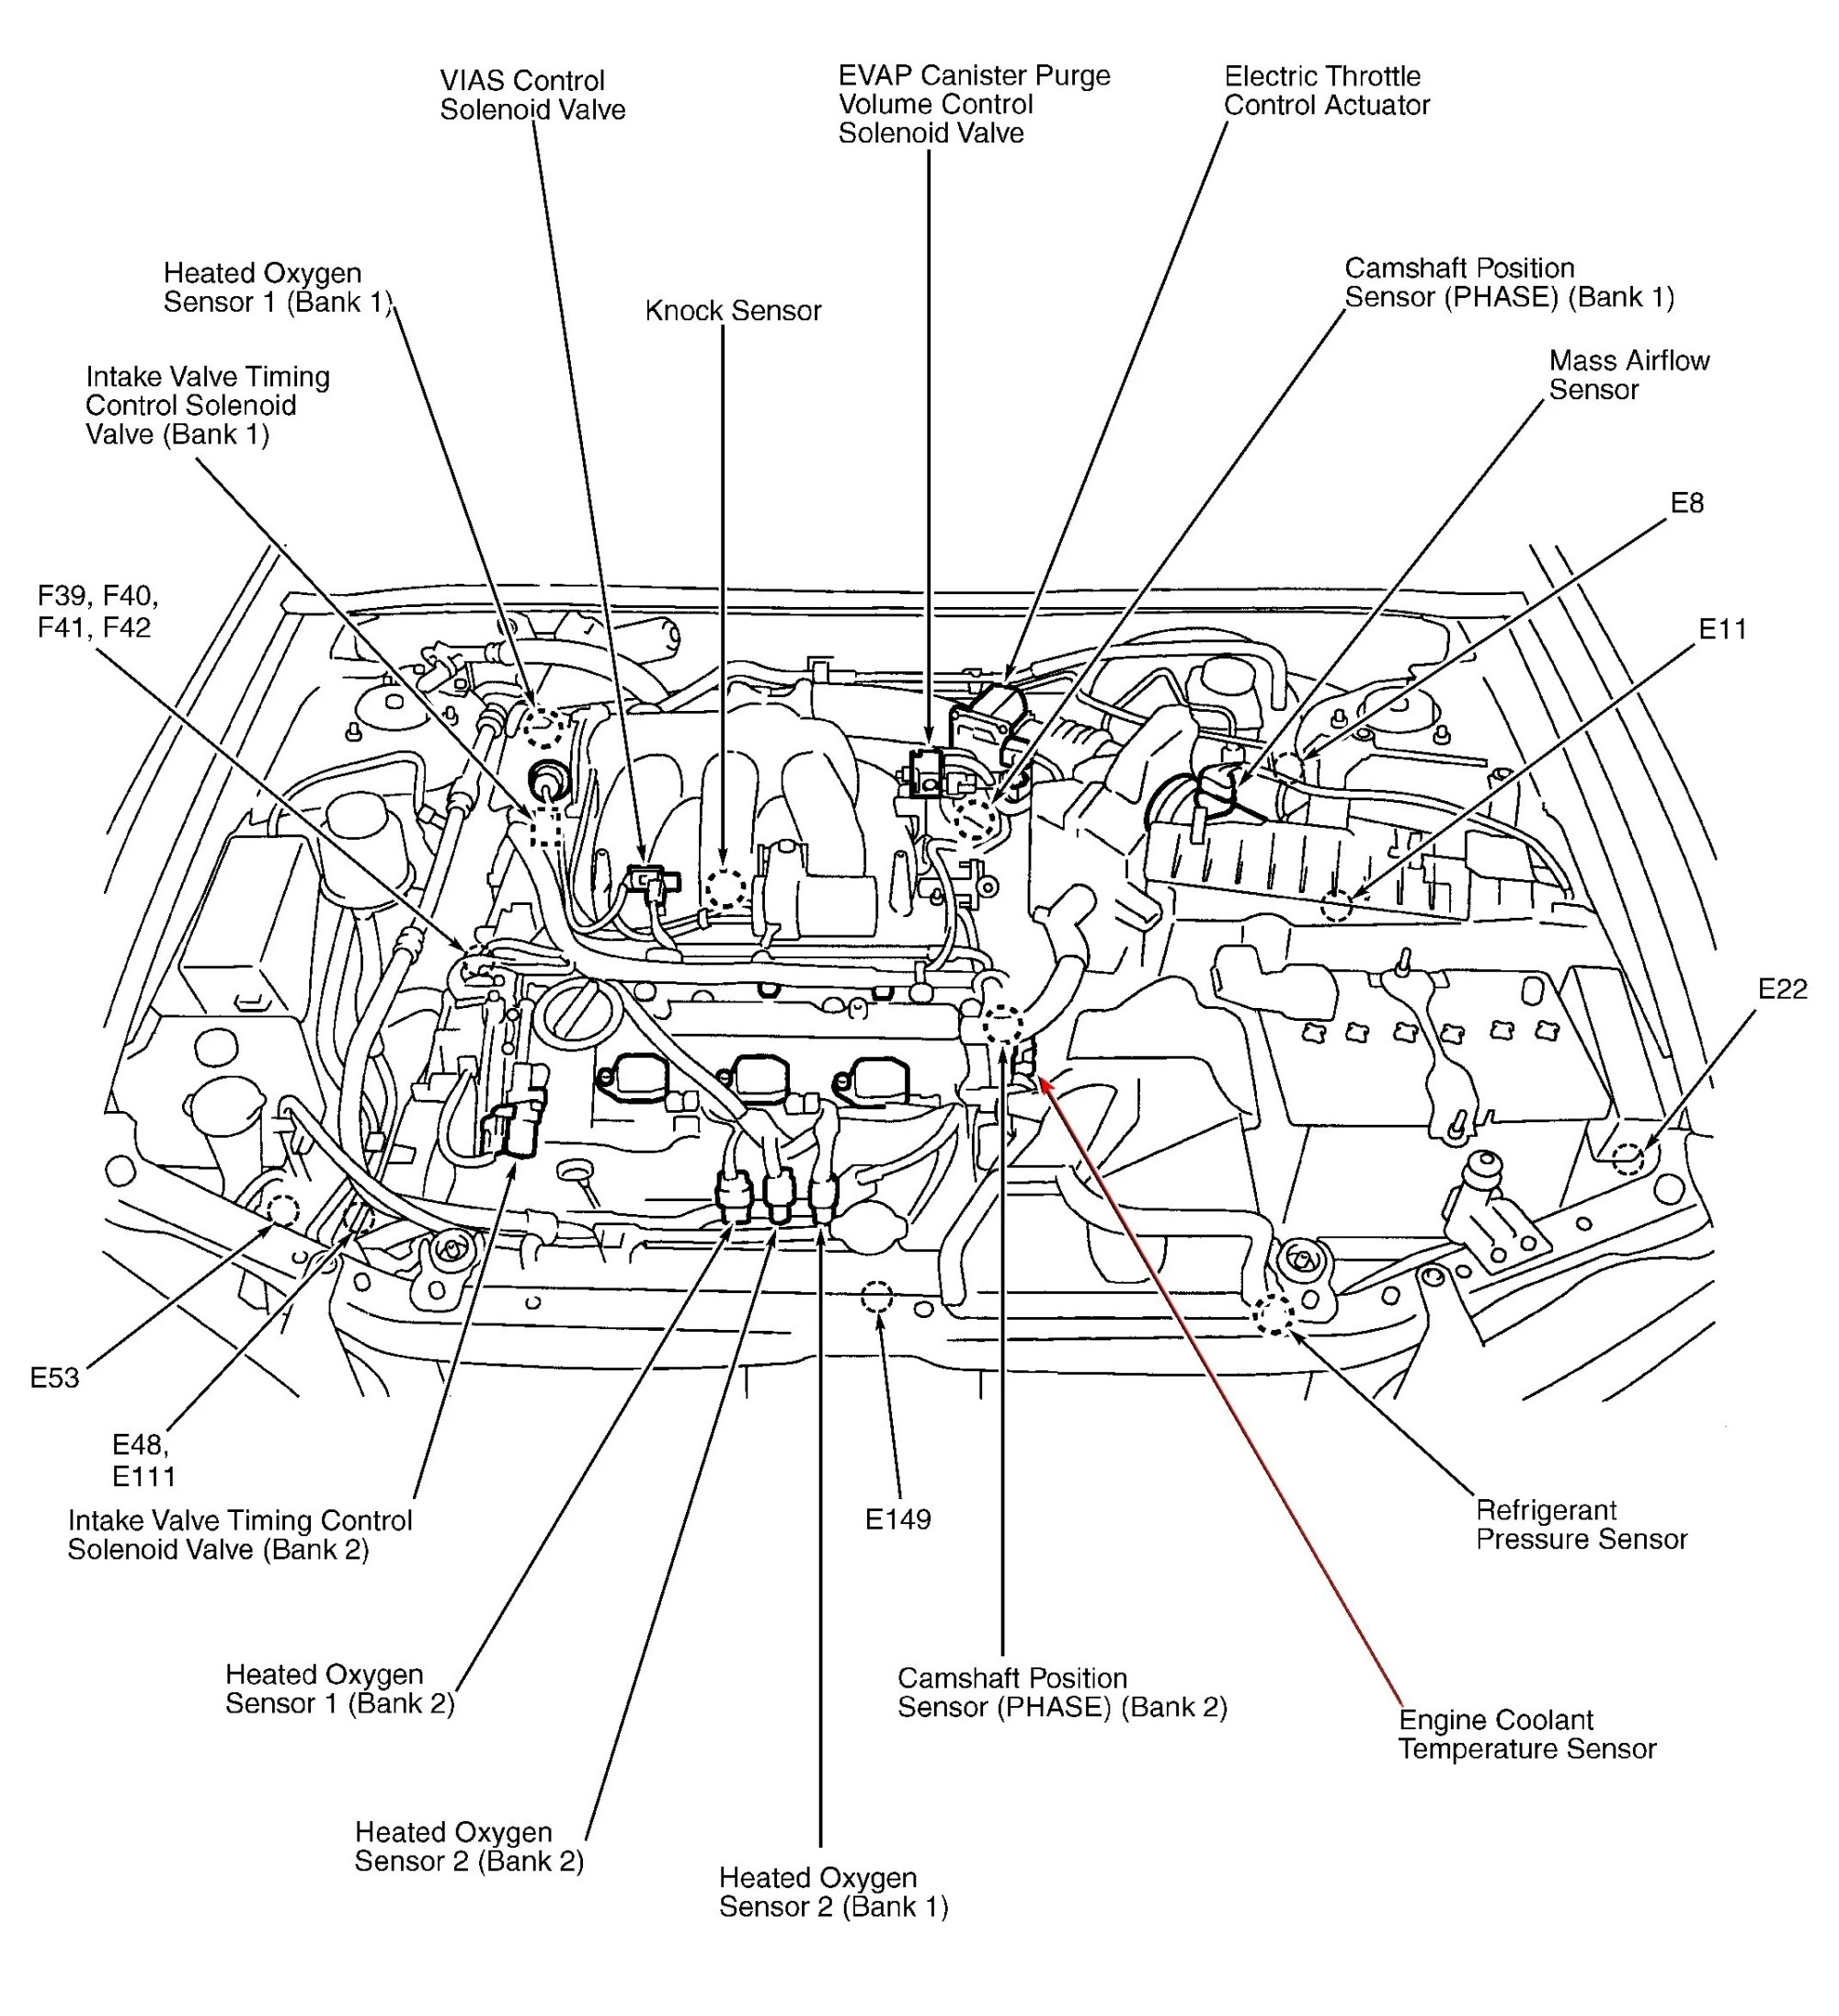 hight resolution of 2011 nissan pathfinder engine diagram wiring library diagram data2011 nissan maxima engine diagram online wiring diagram